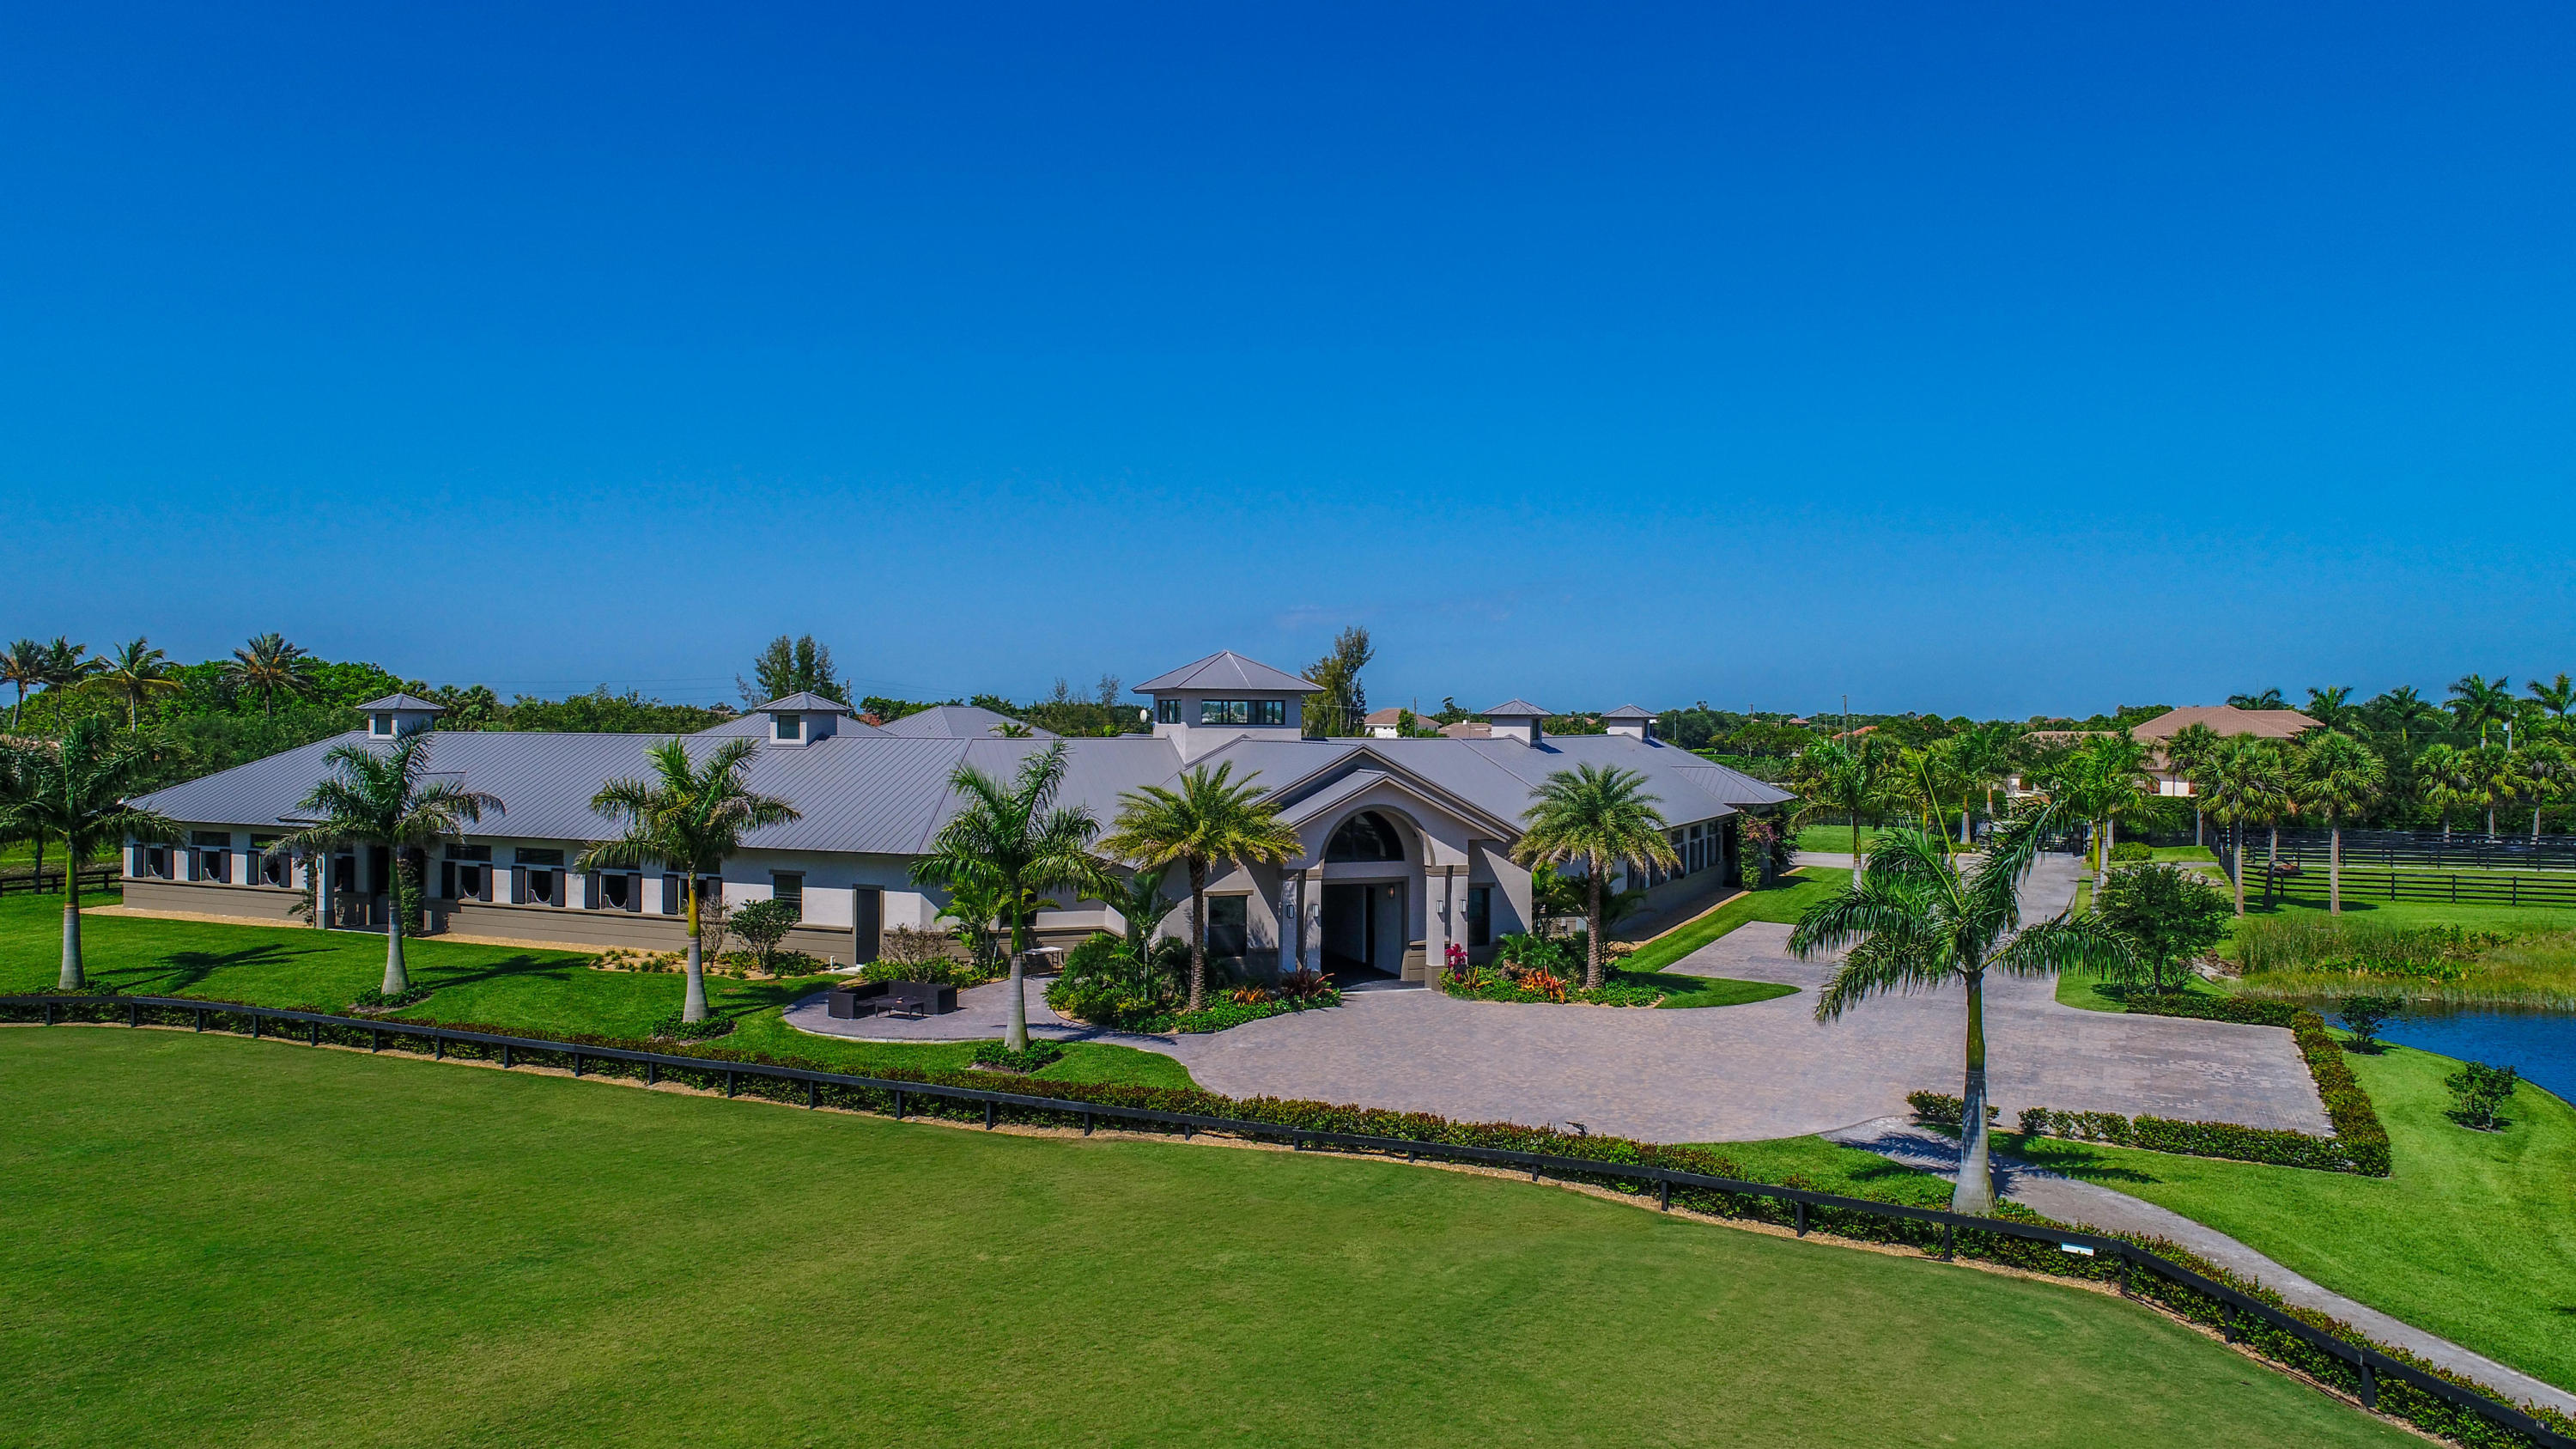 15172 & 15134 Natures Point Lane, Wellington, Florida 33414, 8 Bedrooms Bedrooms, ,7 BathroomsBathrooms,Residential,for Sale,& 15134 Natures Point,RX-10431666, , , ,for Sale